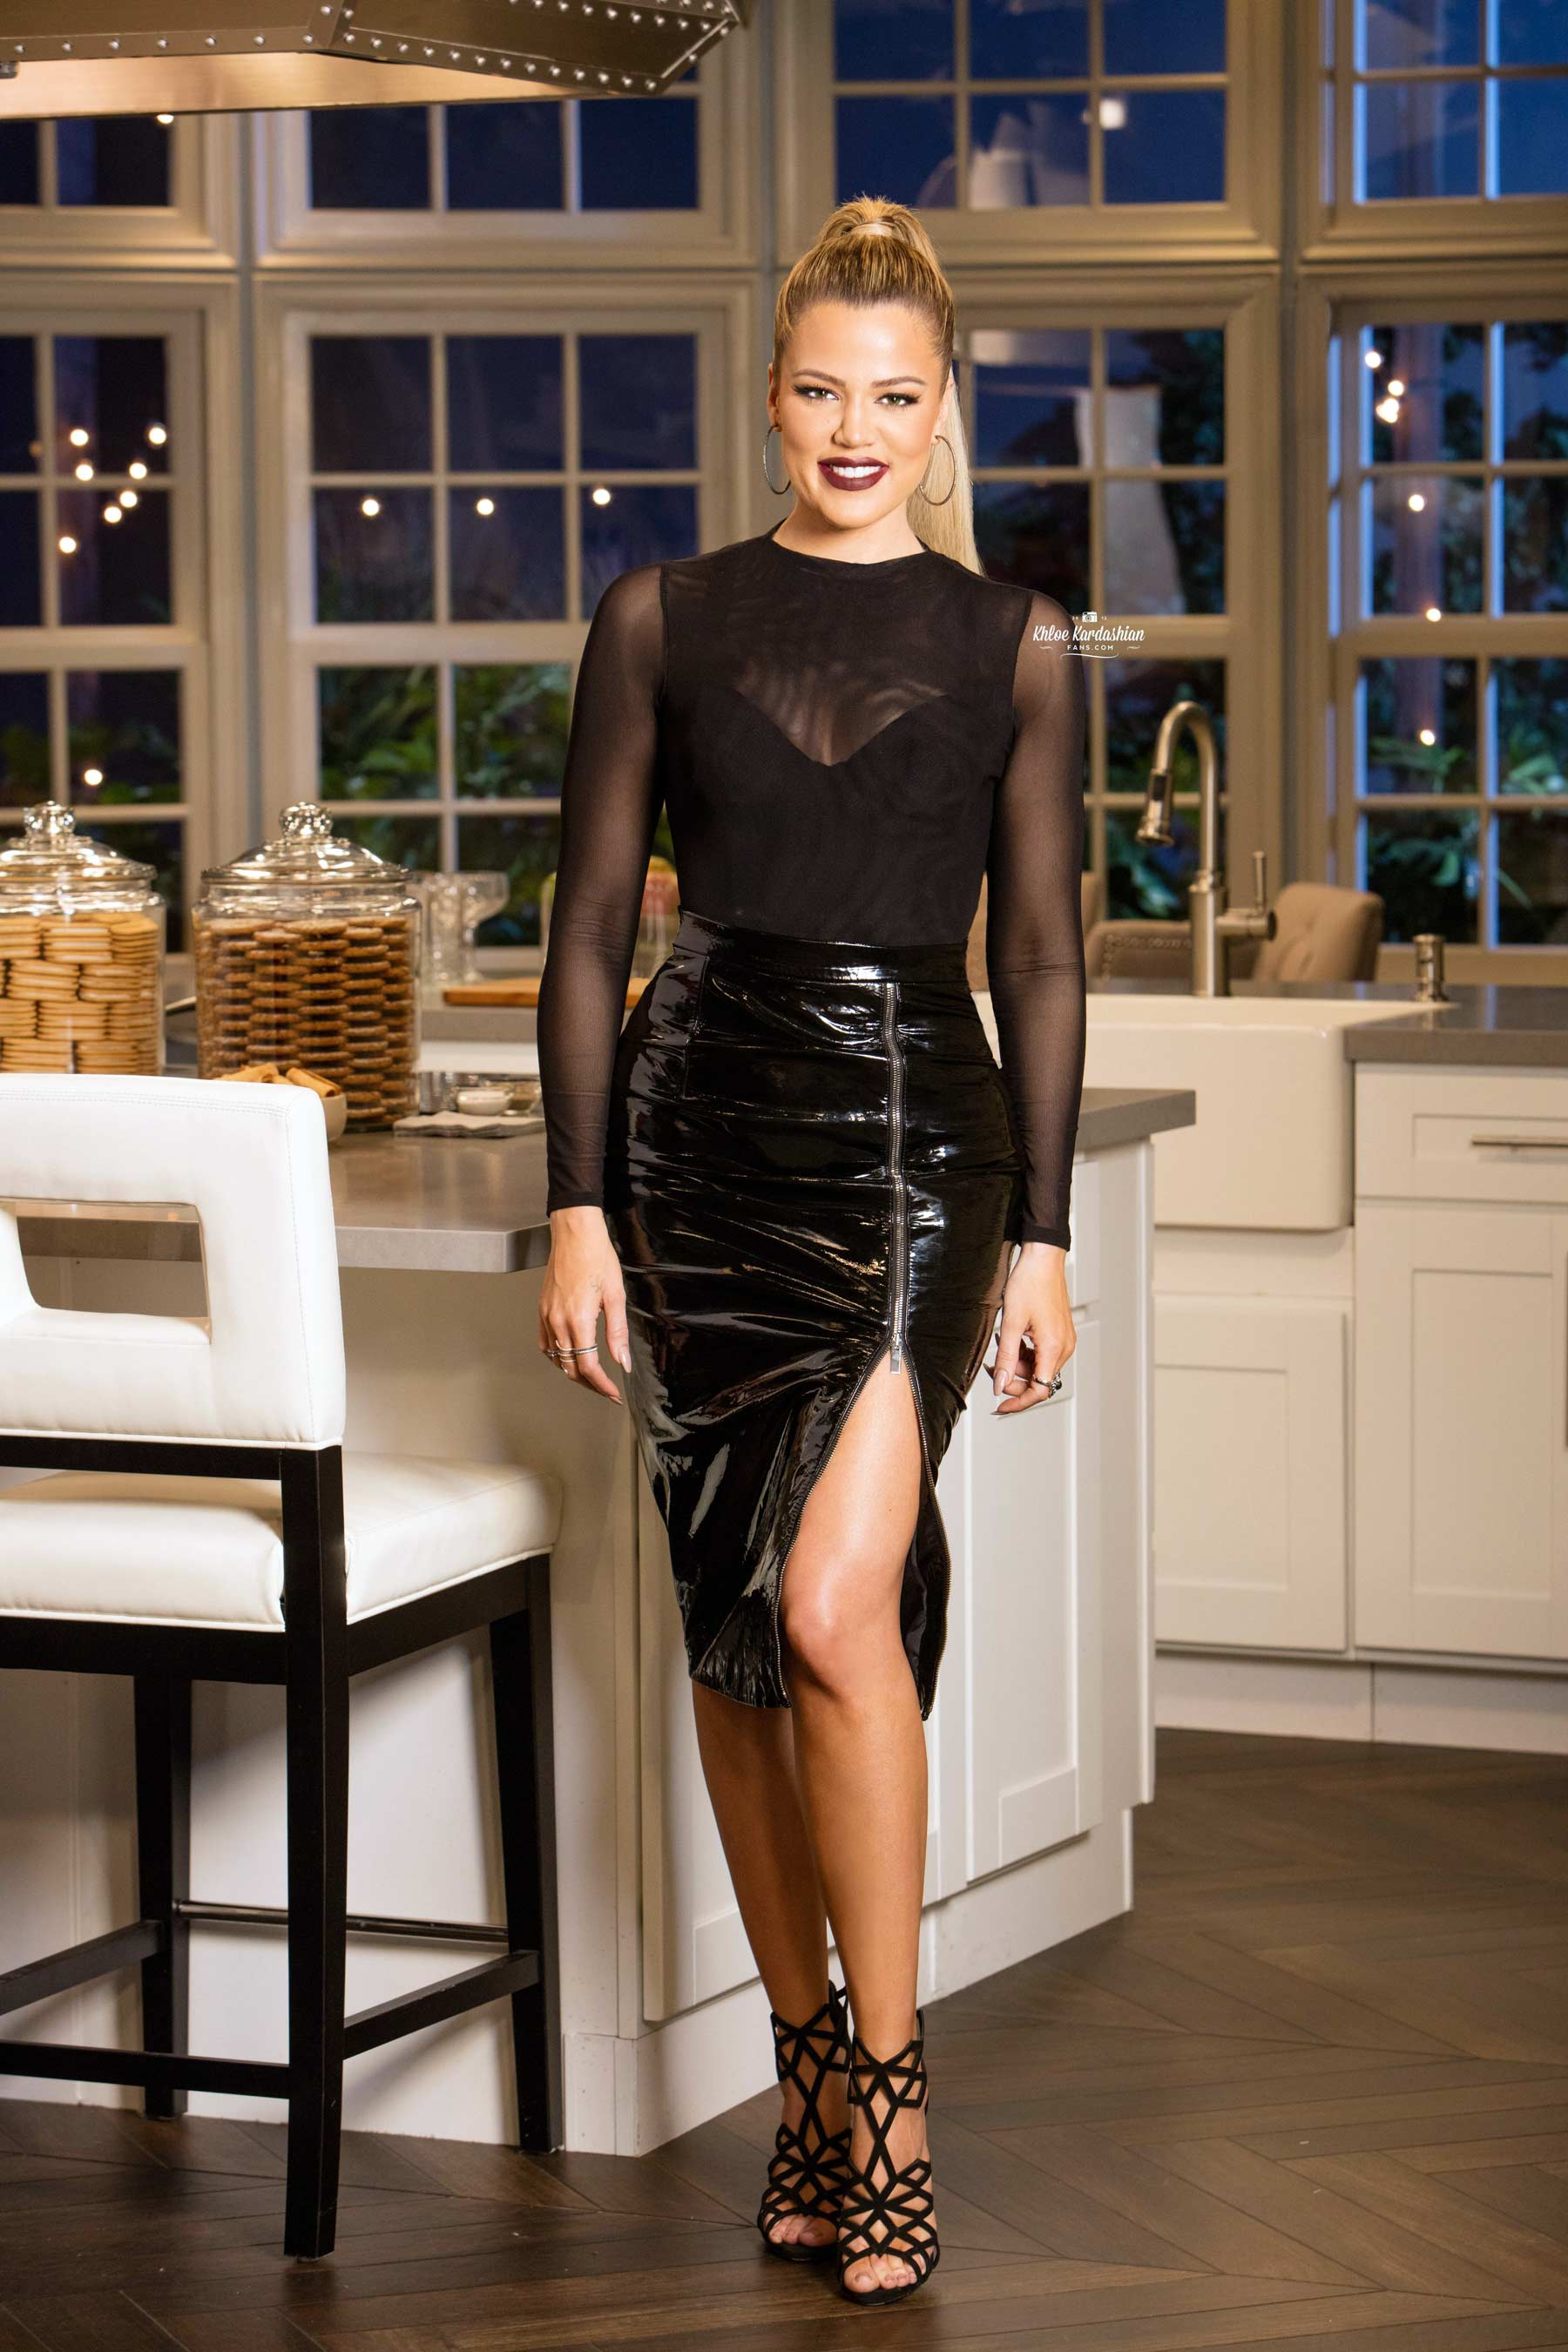 Khloe Kardashian on the set of Kocktails with Khloe